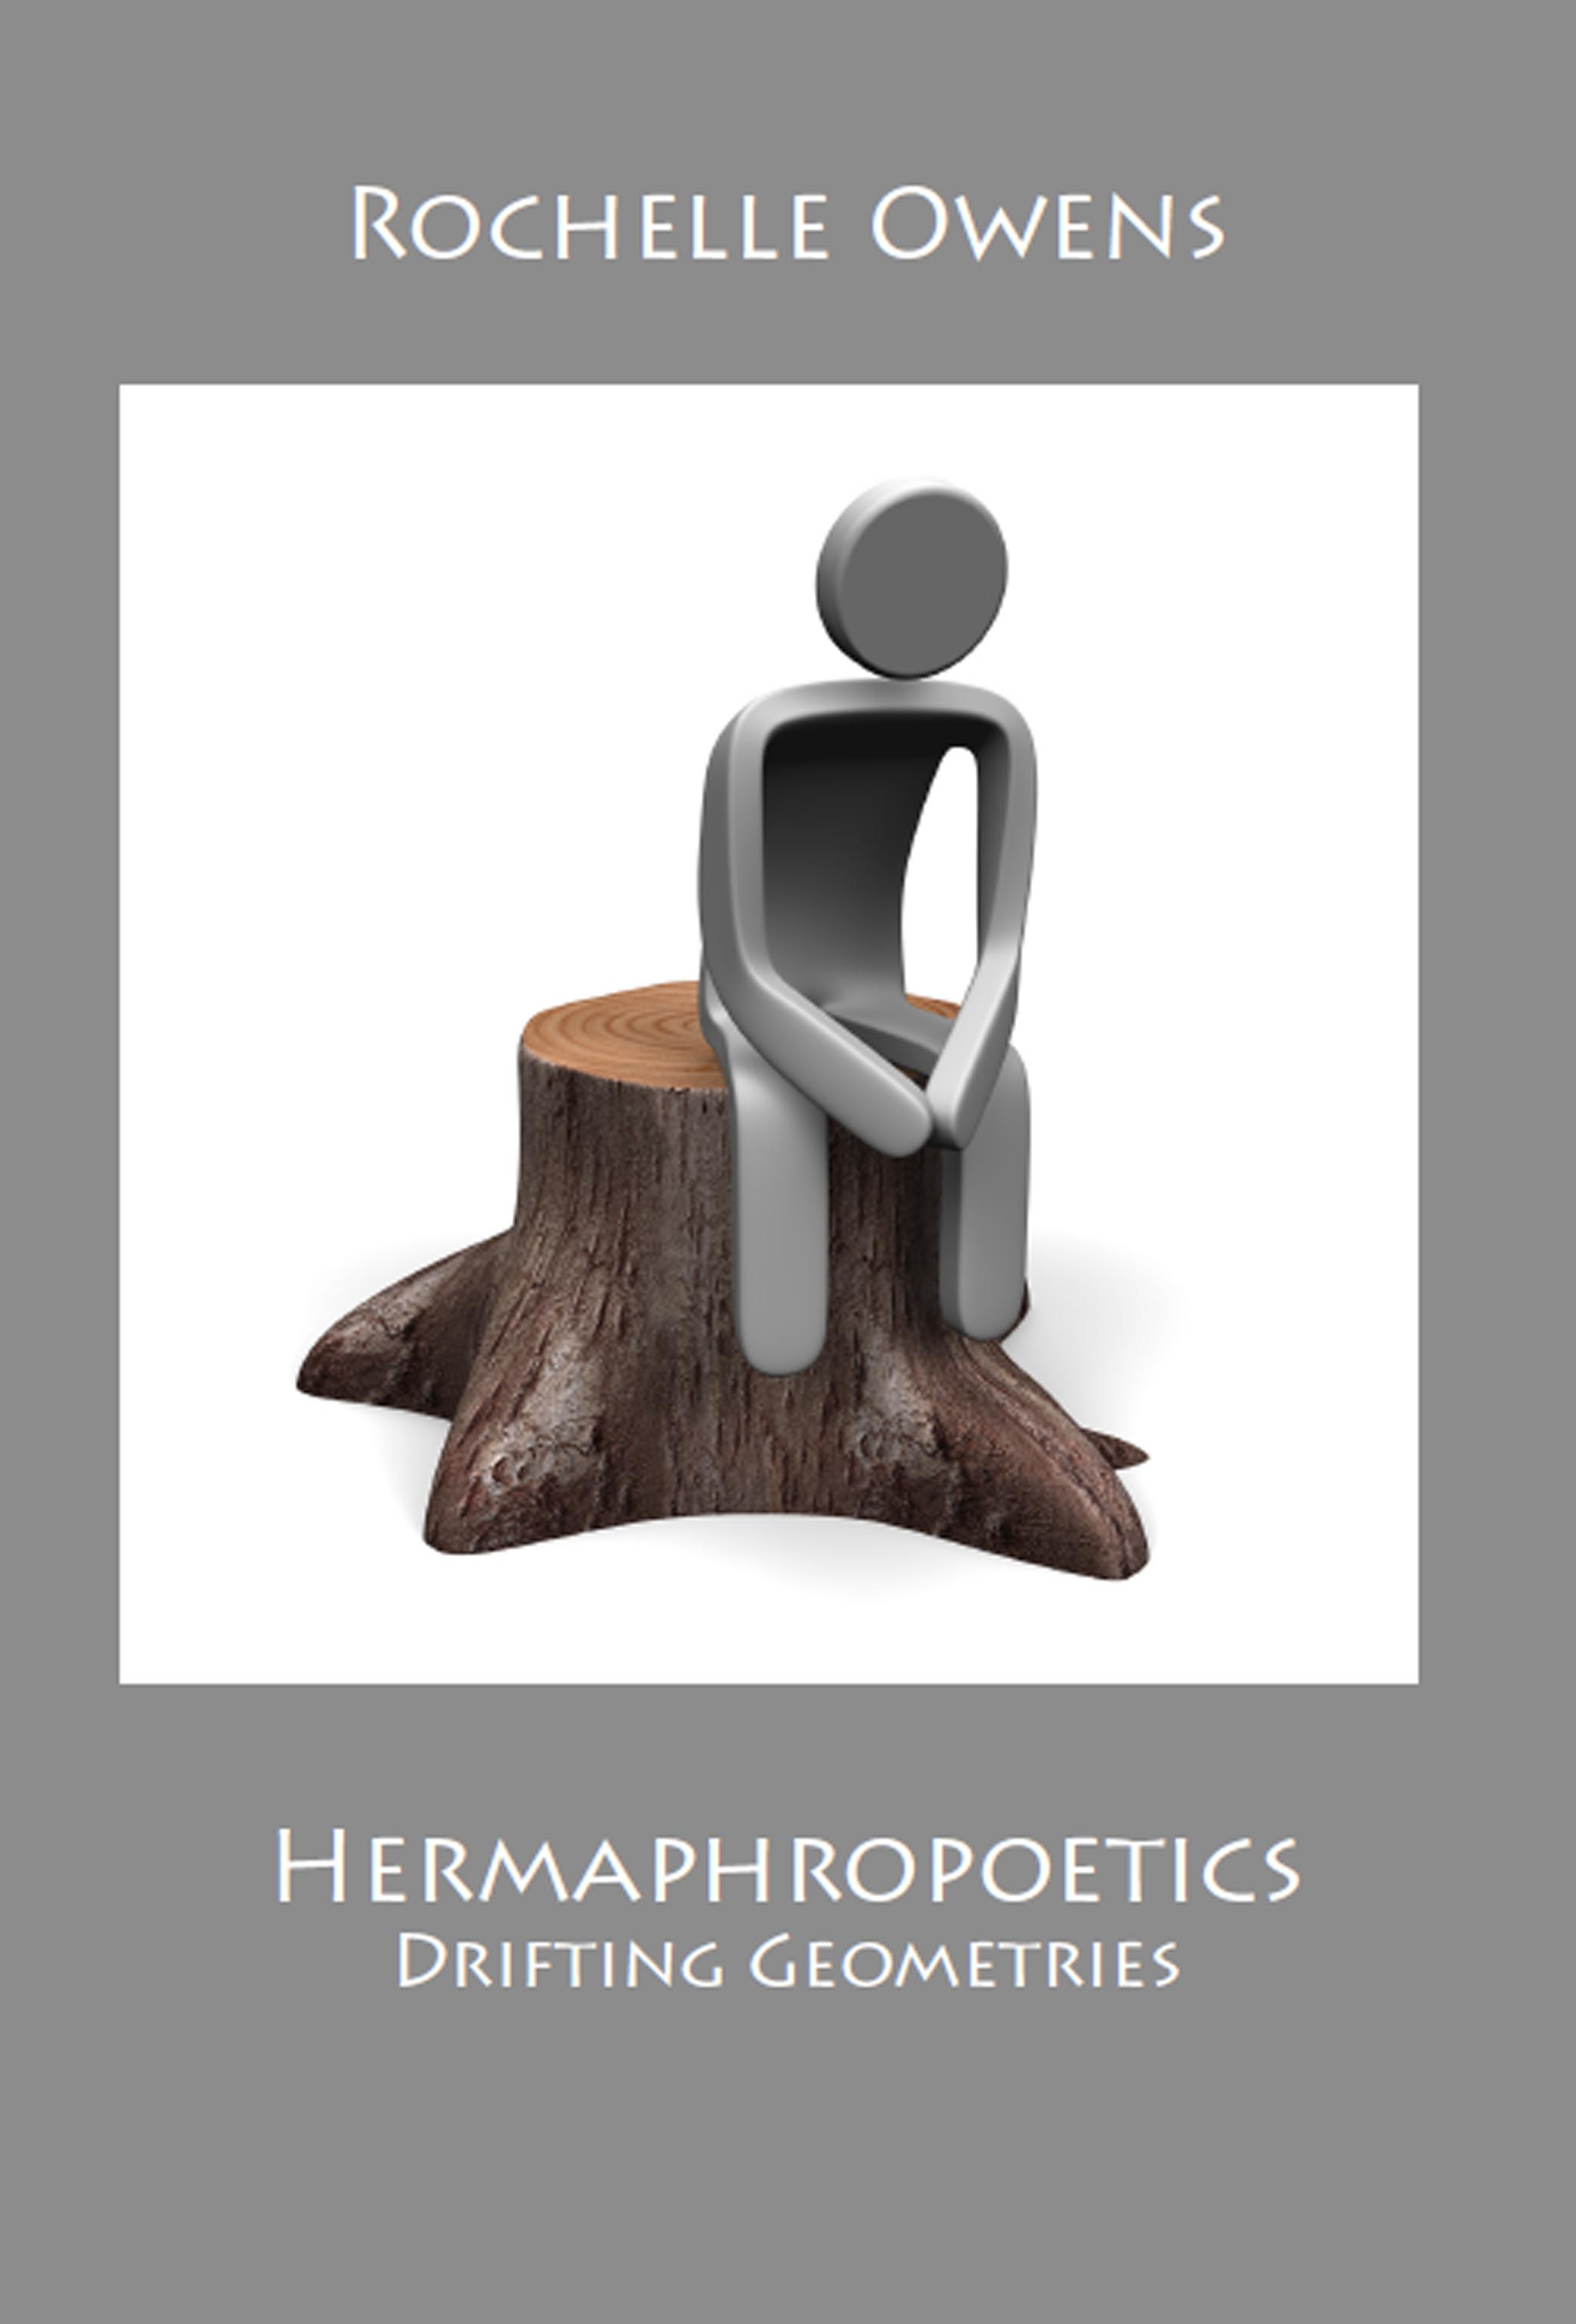 Hermaphropoetics, Drifting Geometries